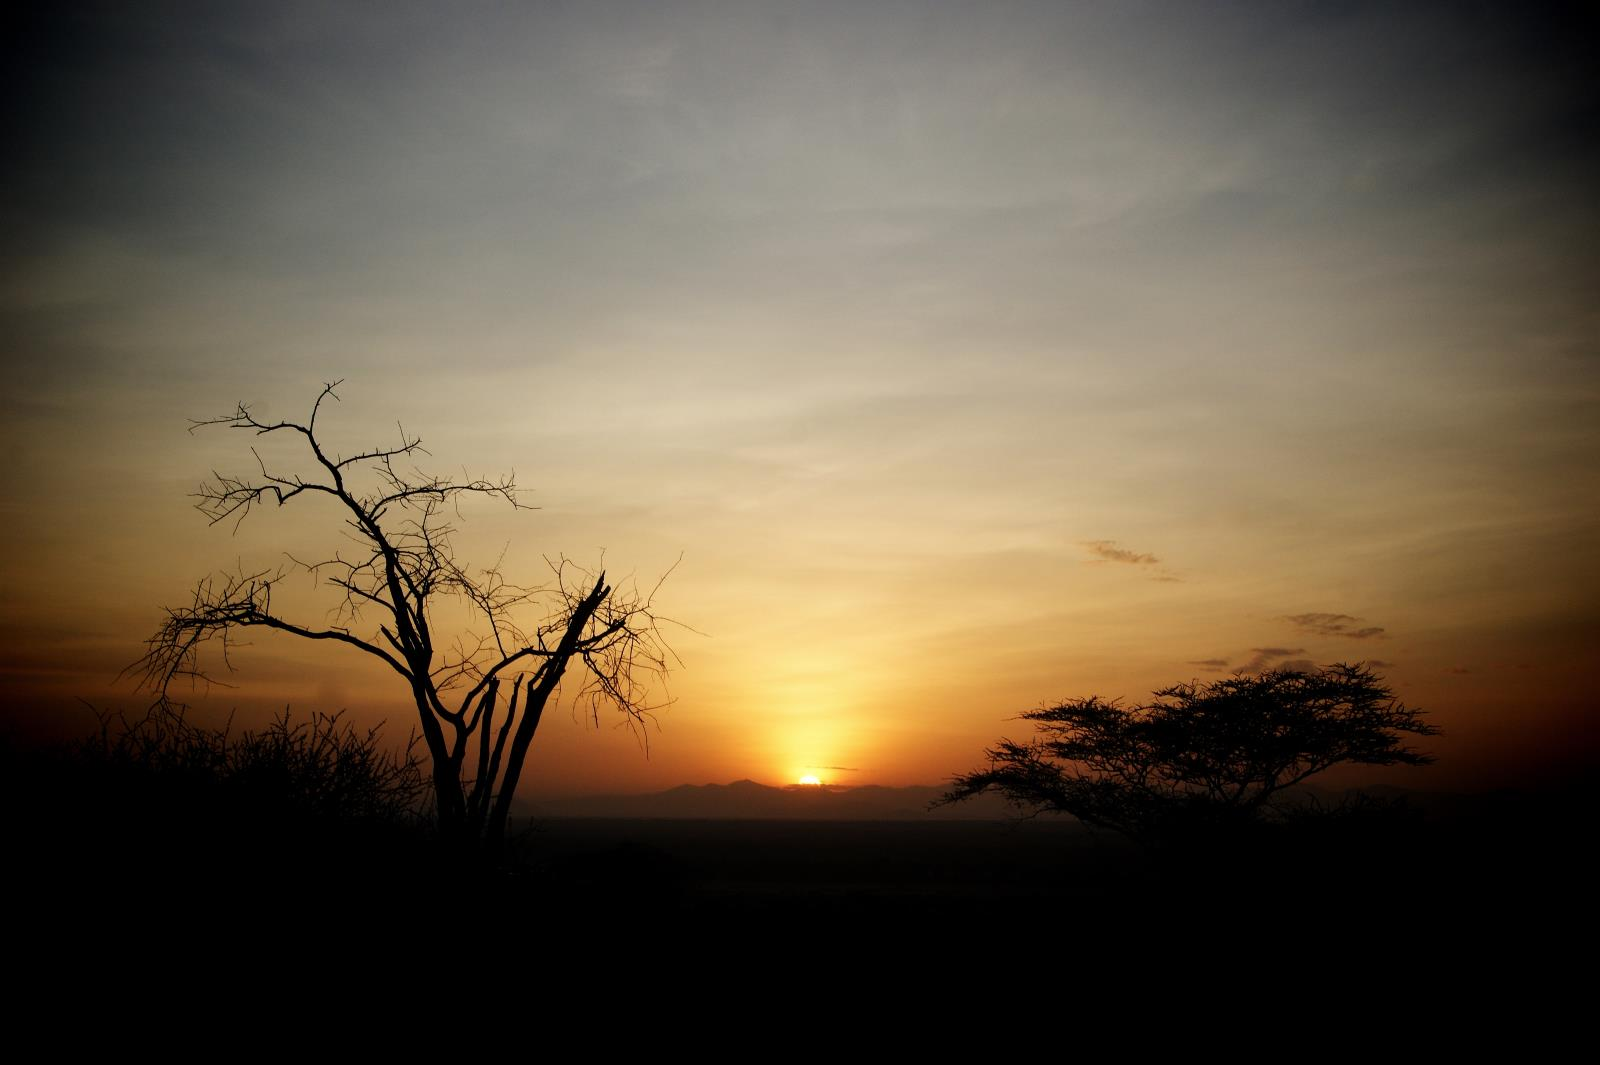 Sundowner Safari through Samburu, Kenya